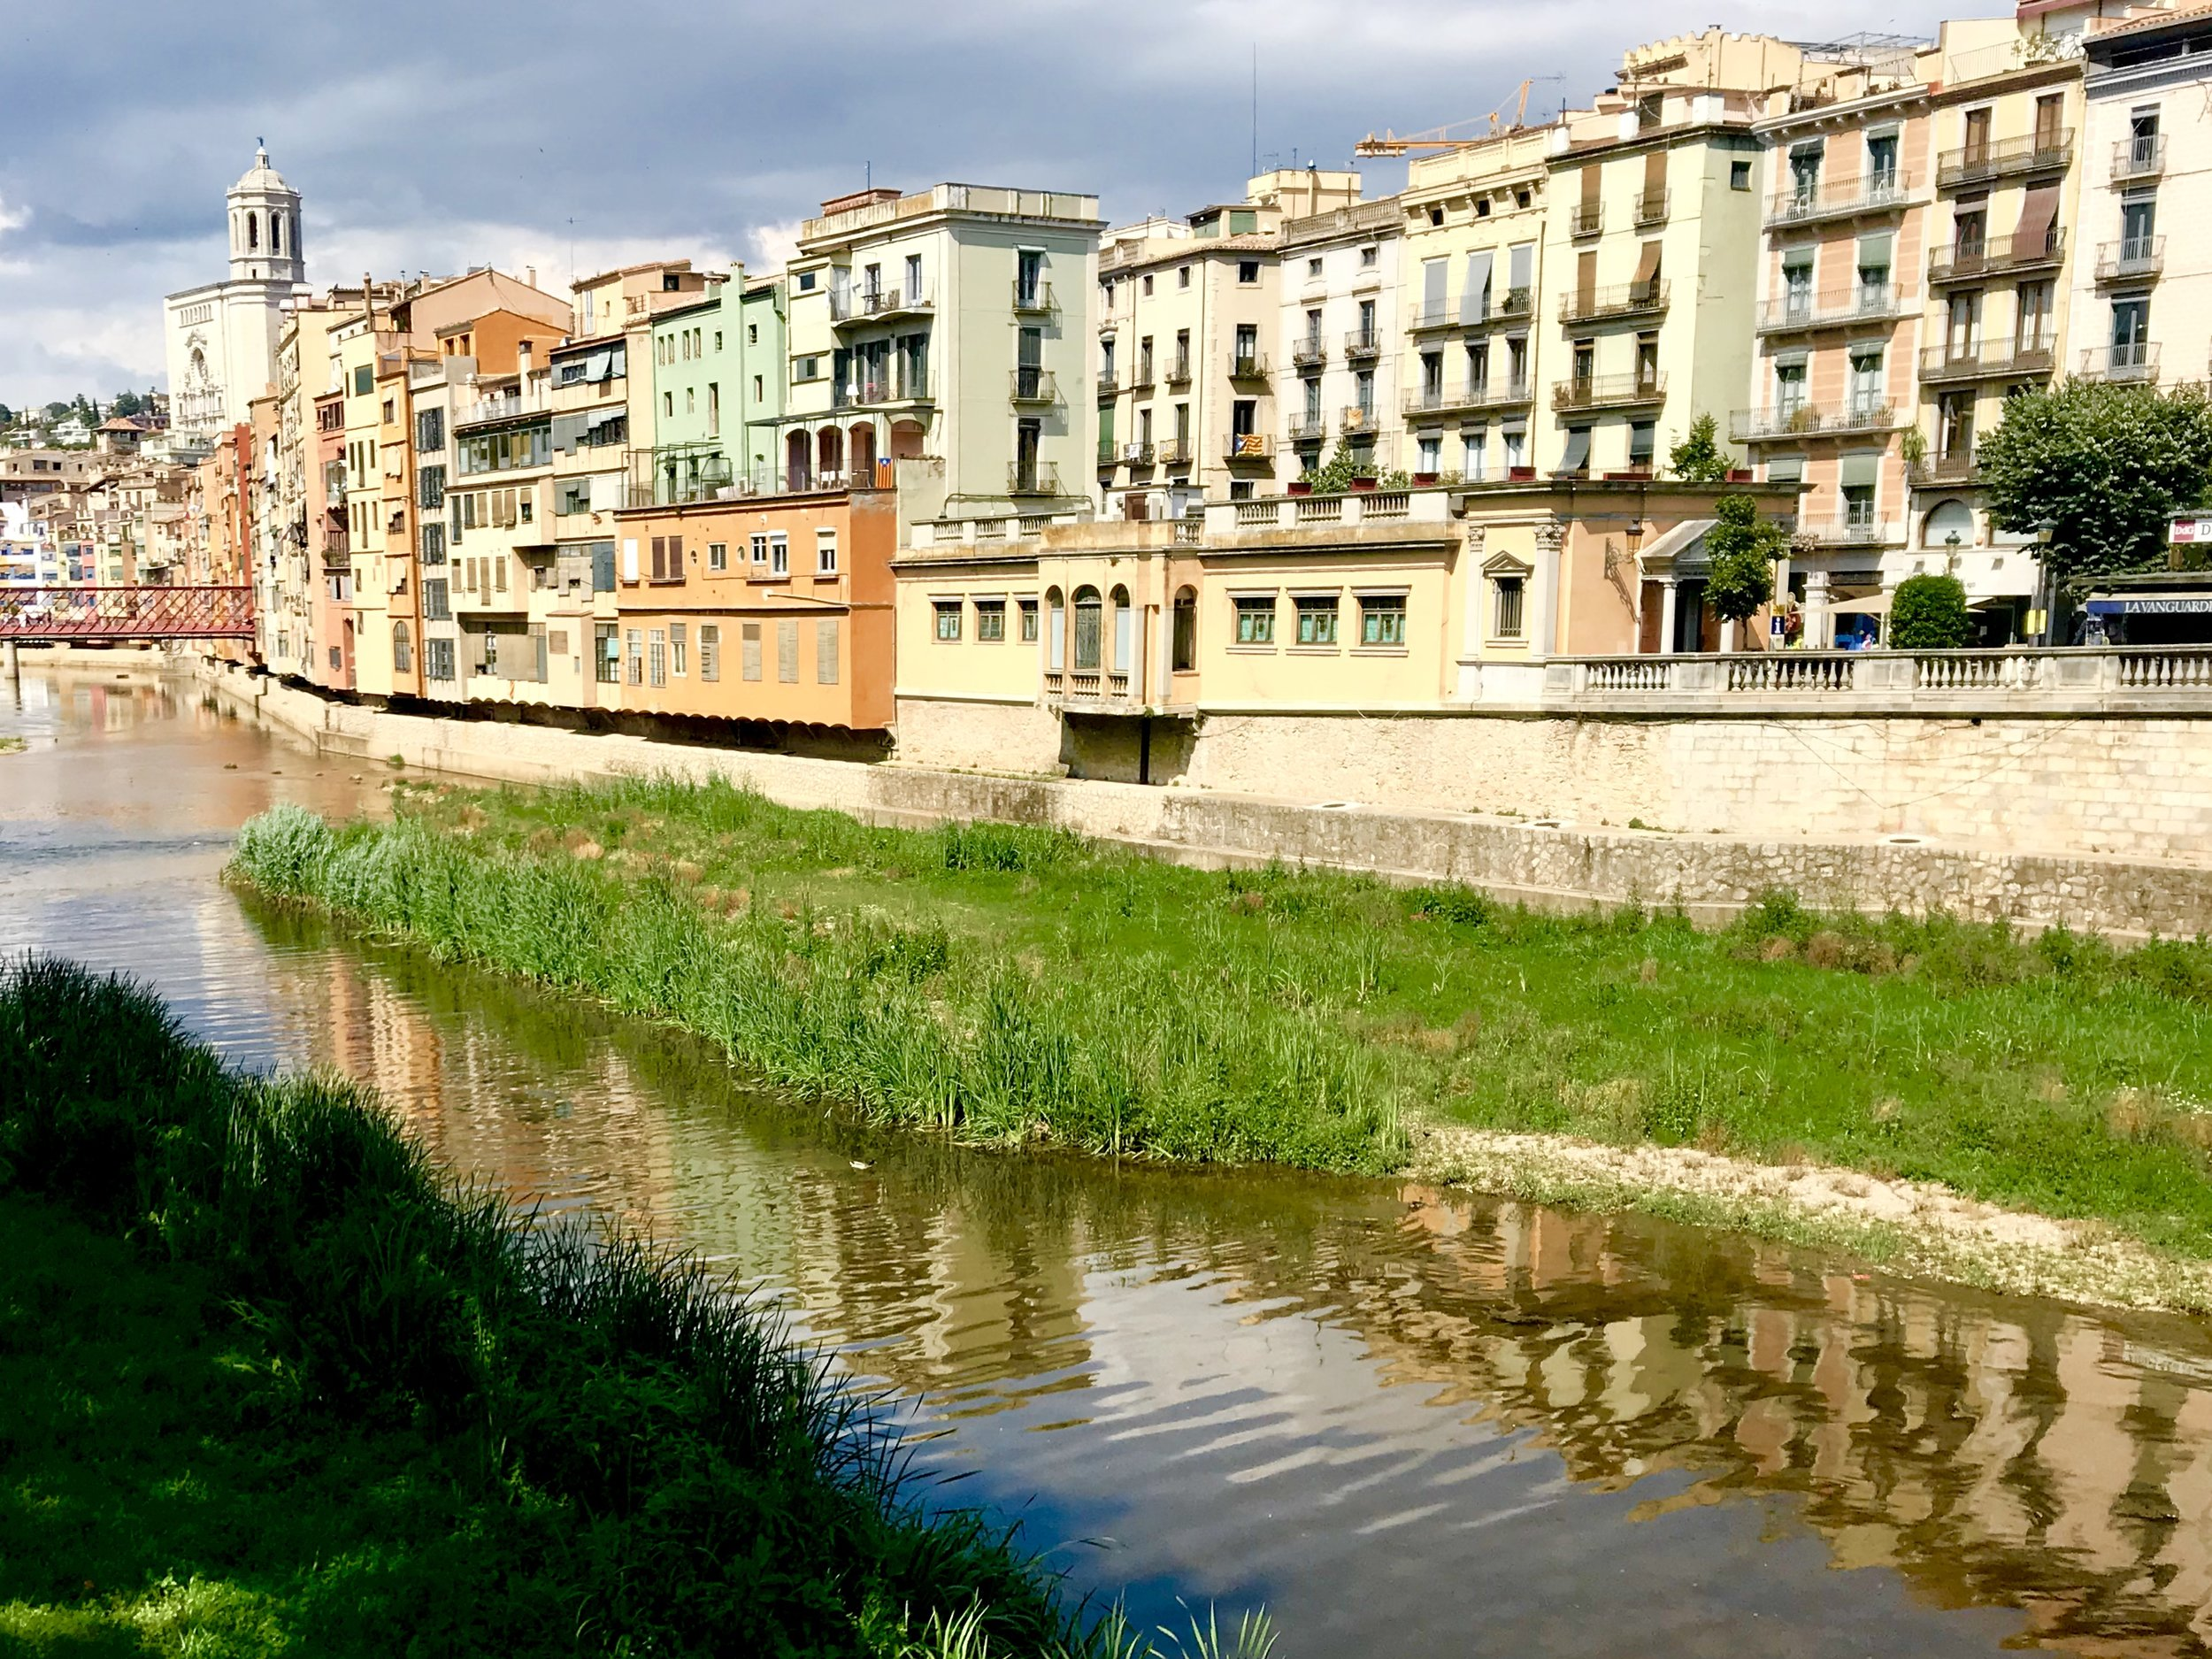 Classic day view of Girona along the Onyar River, one of three rivers here (like my home town of Pittsburgh, PA).